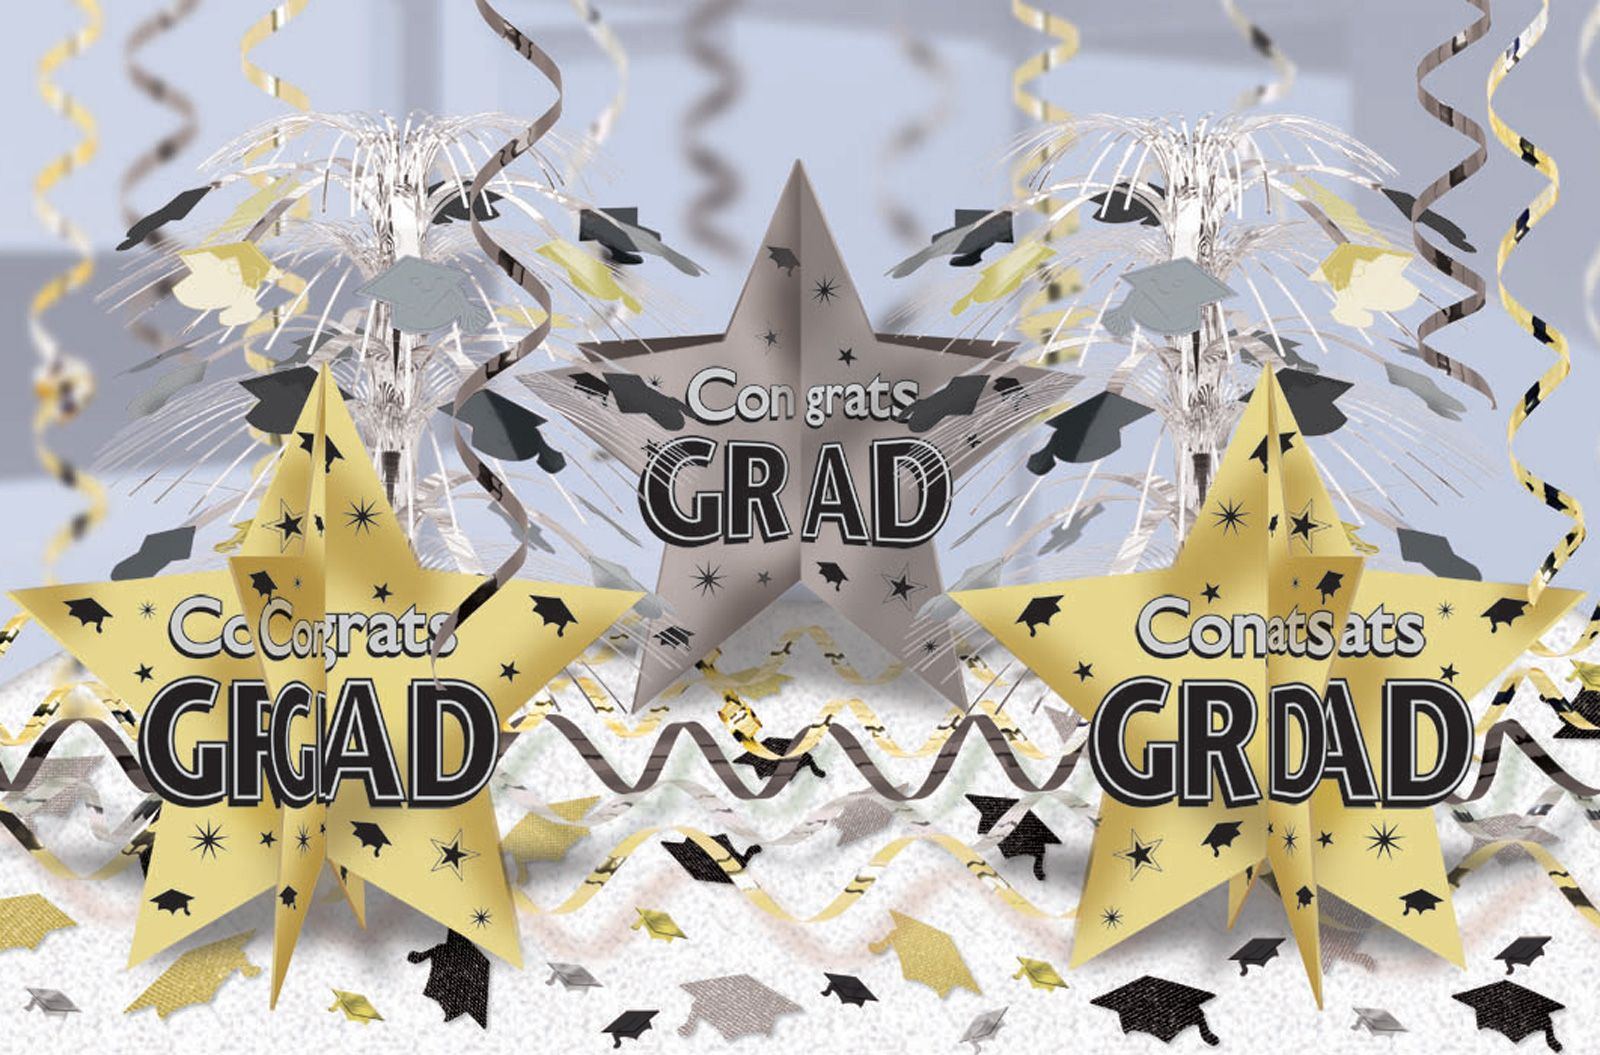 Graduation table decorations homemade - Graduation Party Graduation Party Table Decoration Photograph Graduation Ul